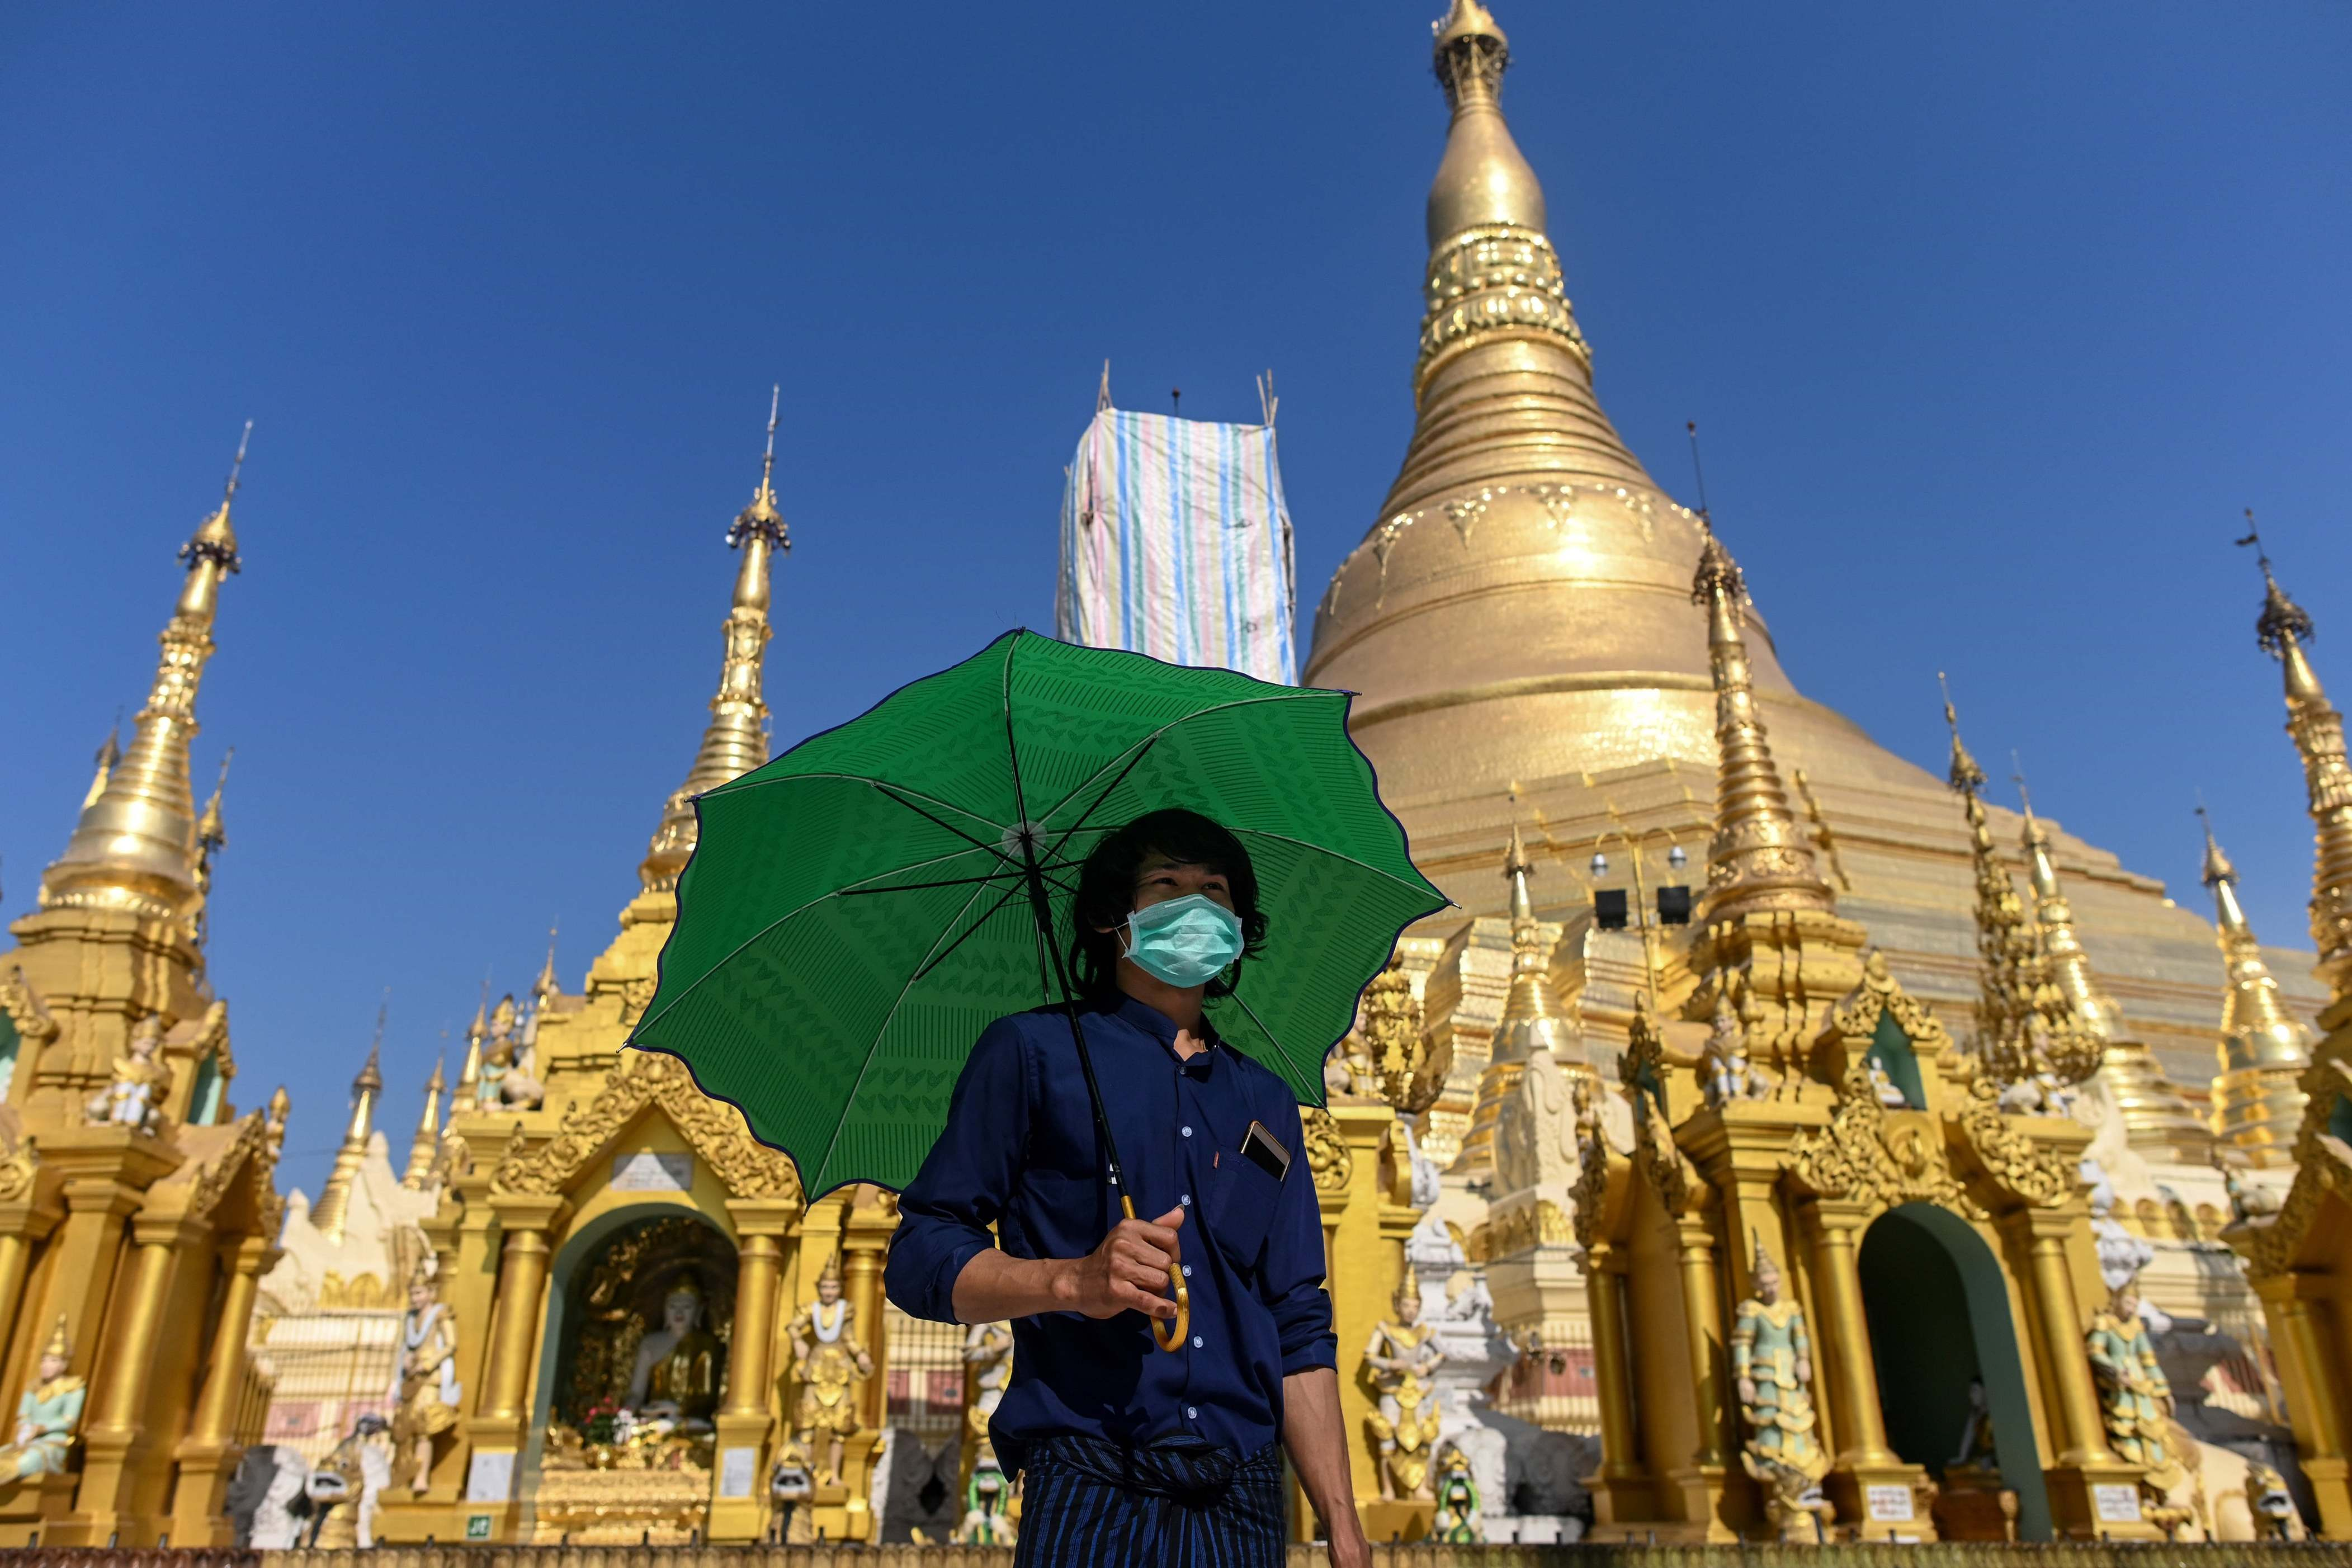 Slide 48 of 113: A man wears a face mask, amid concerns of the spread of the COVID-19 coronavirus, as he visits Shwedagon Pagoda in Yangon on March 18, 2020.